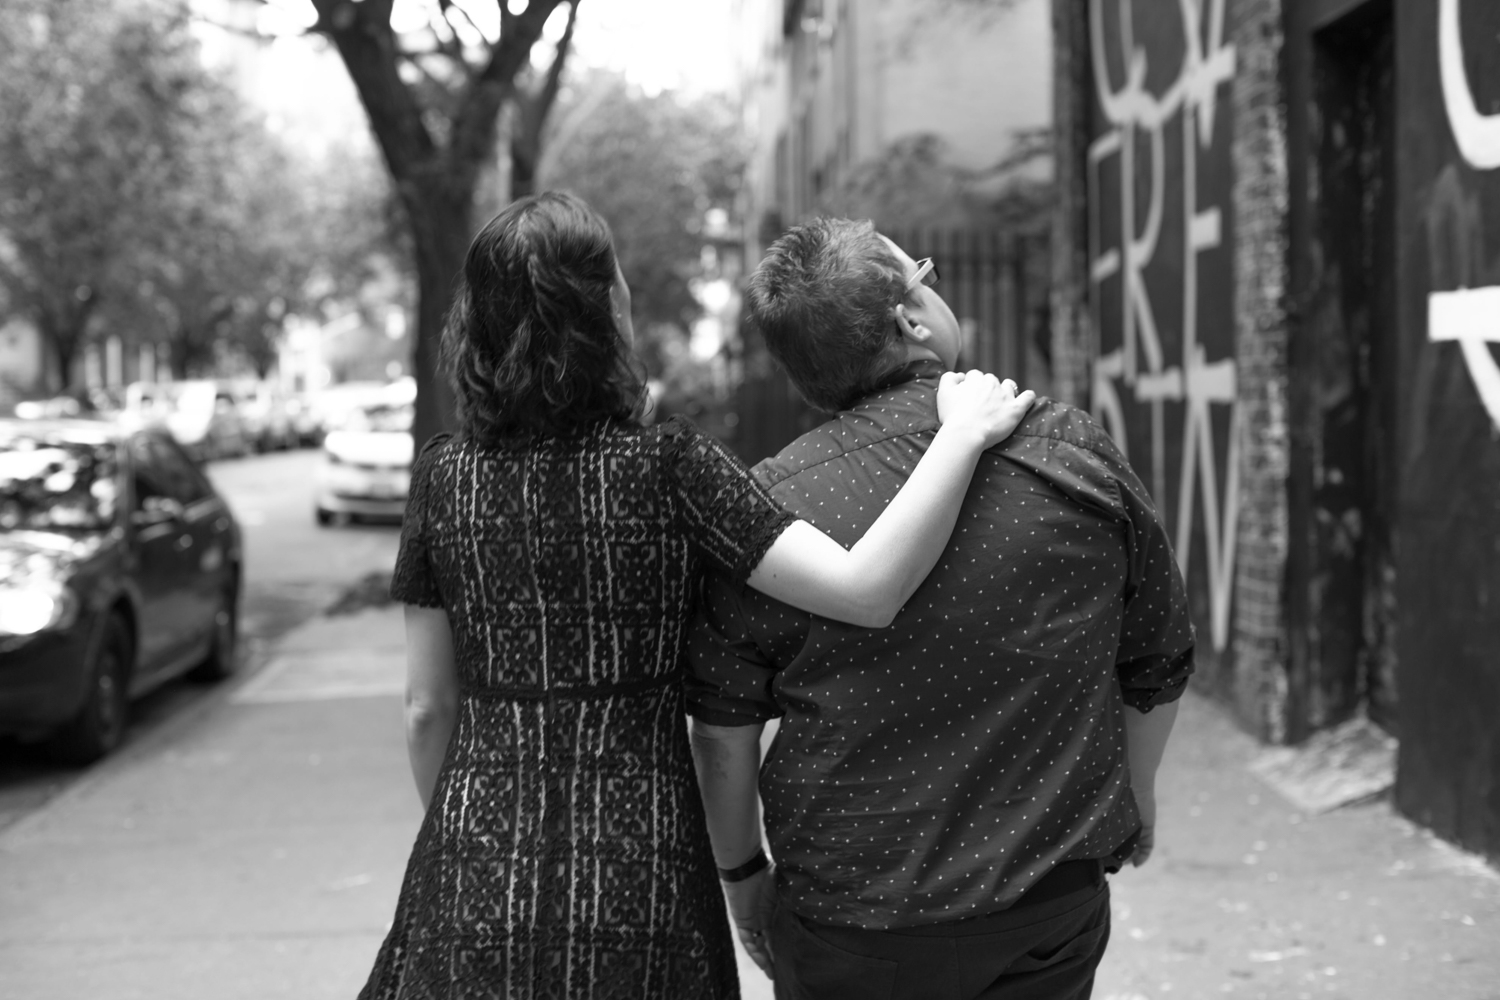 Photograph of couple walking through NYC